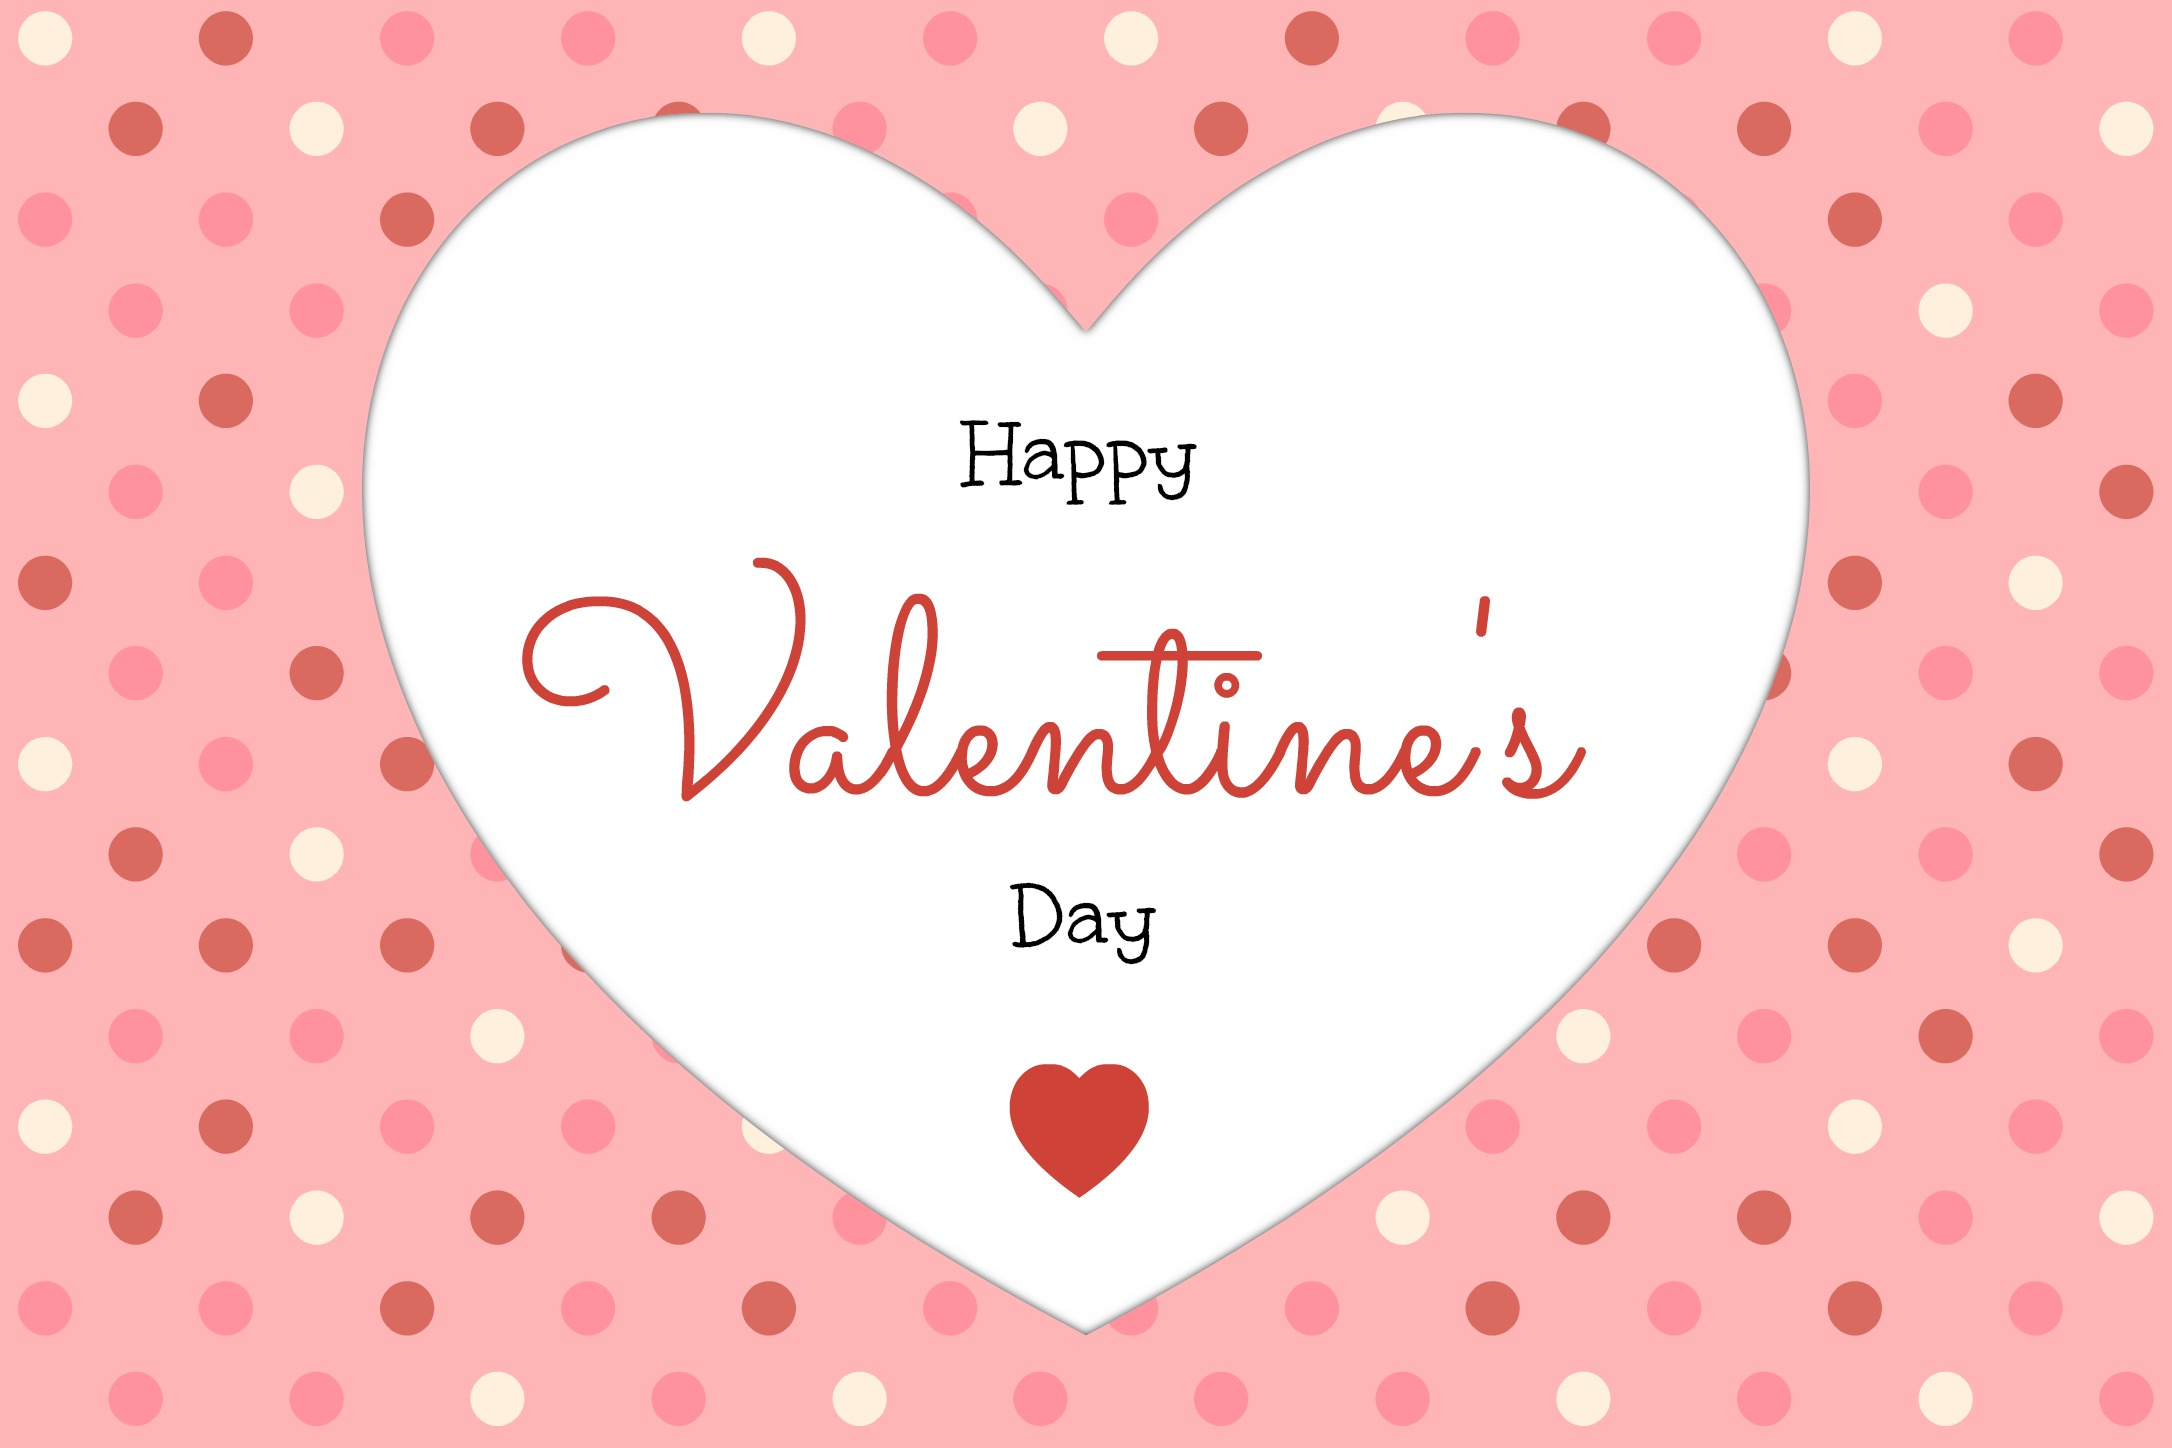 Happy Valentine's Day Cards – WeNeedFun